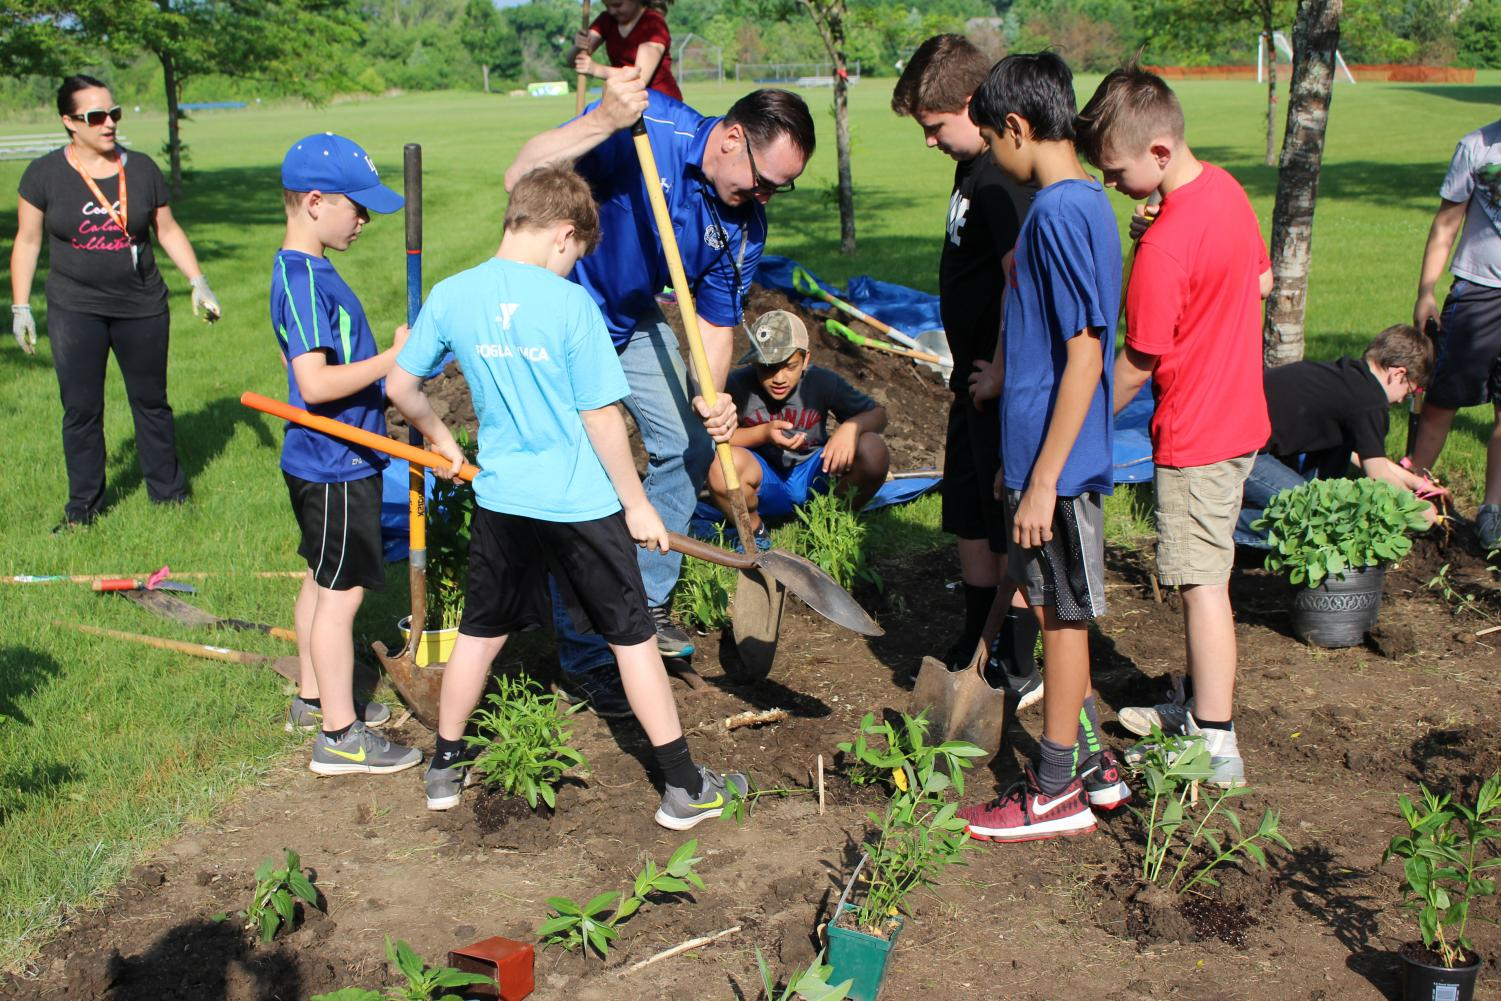 Mr.+Osburn%2C+superintendent%2C+helps+plant+a+community+garden+with+students.+The+superintendent+is+know+to+participate+in+community+events+like+this%2C+and+has+been+for+the+last+three+years+he+has+been+in+Lake+Zurich.